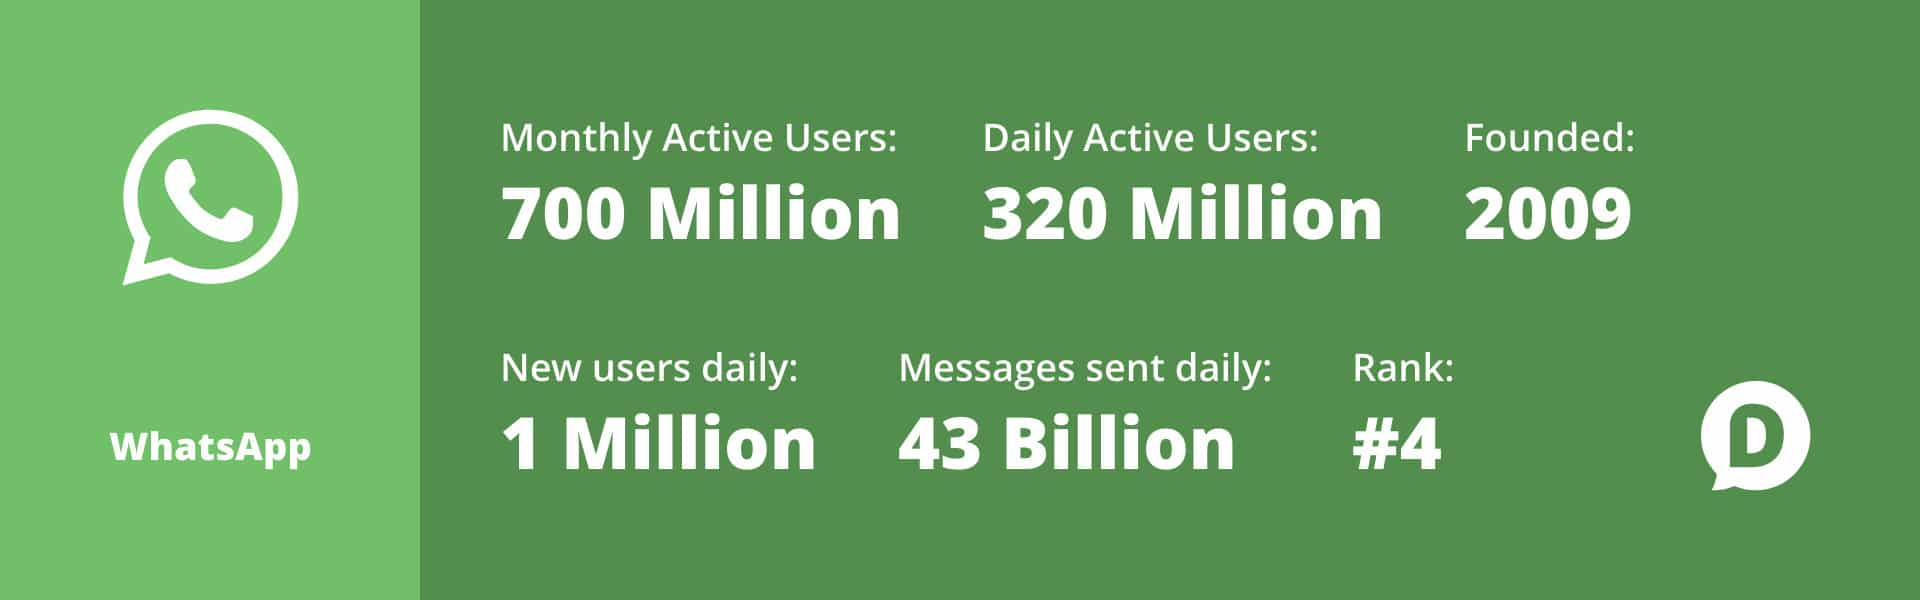 WhatsApp Usage 2018